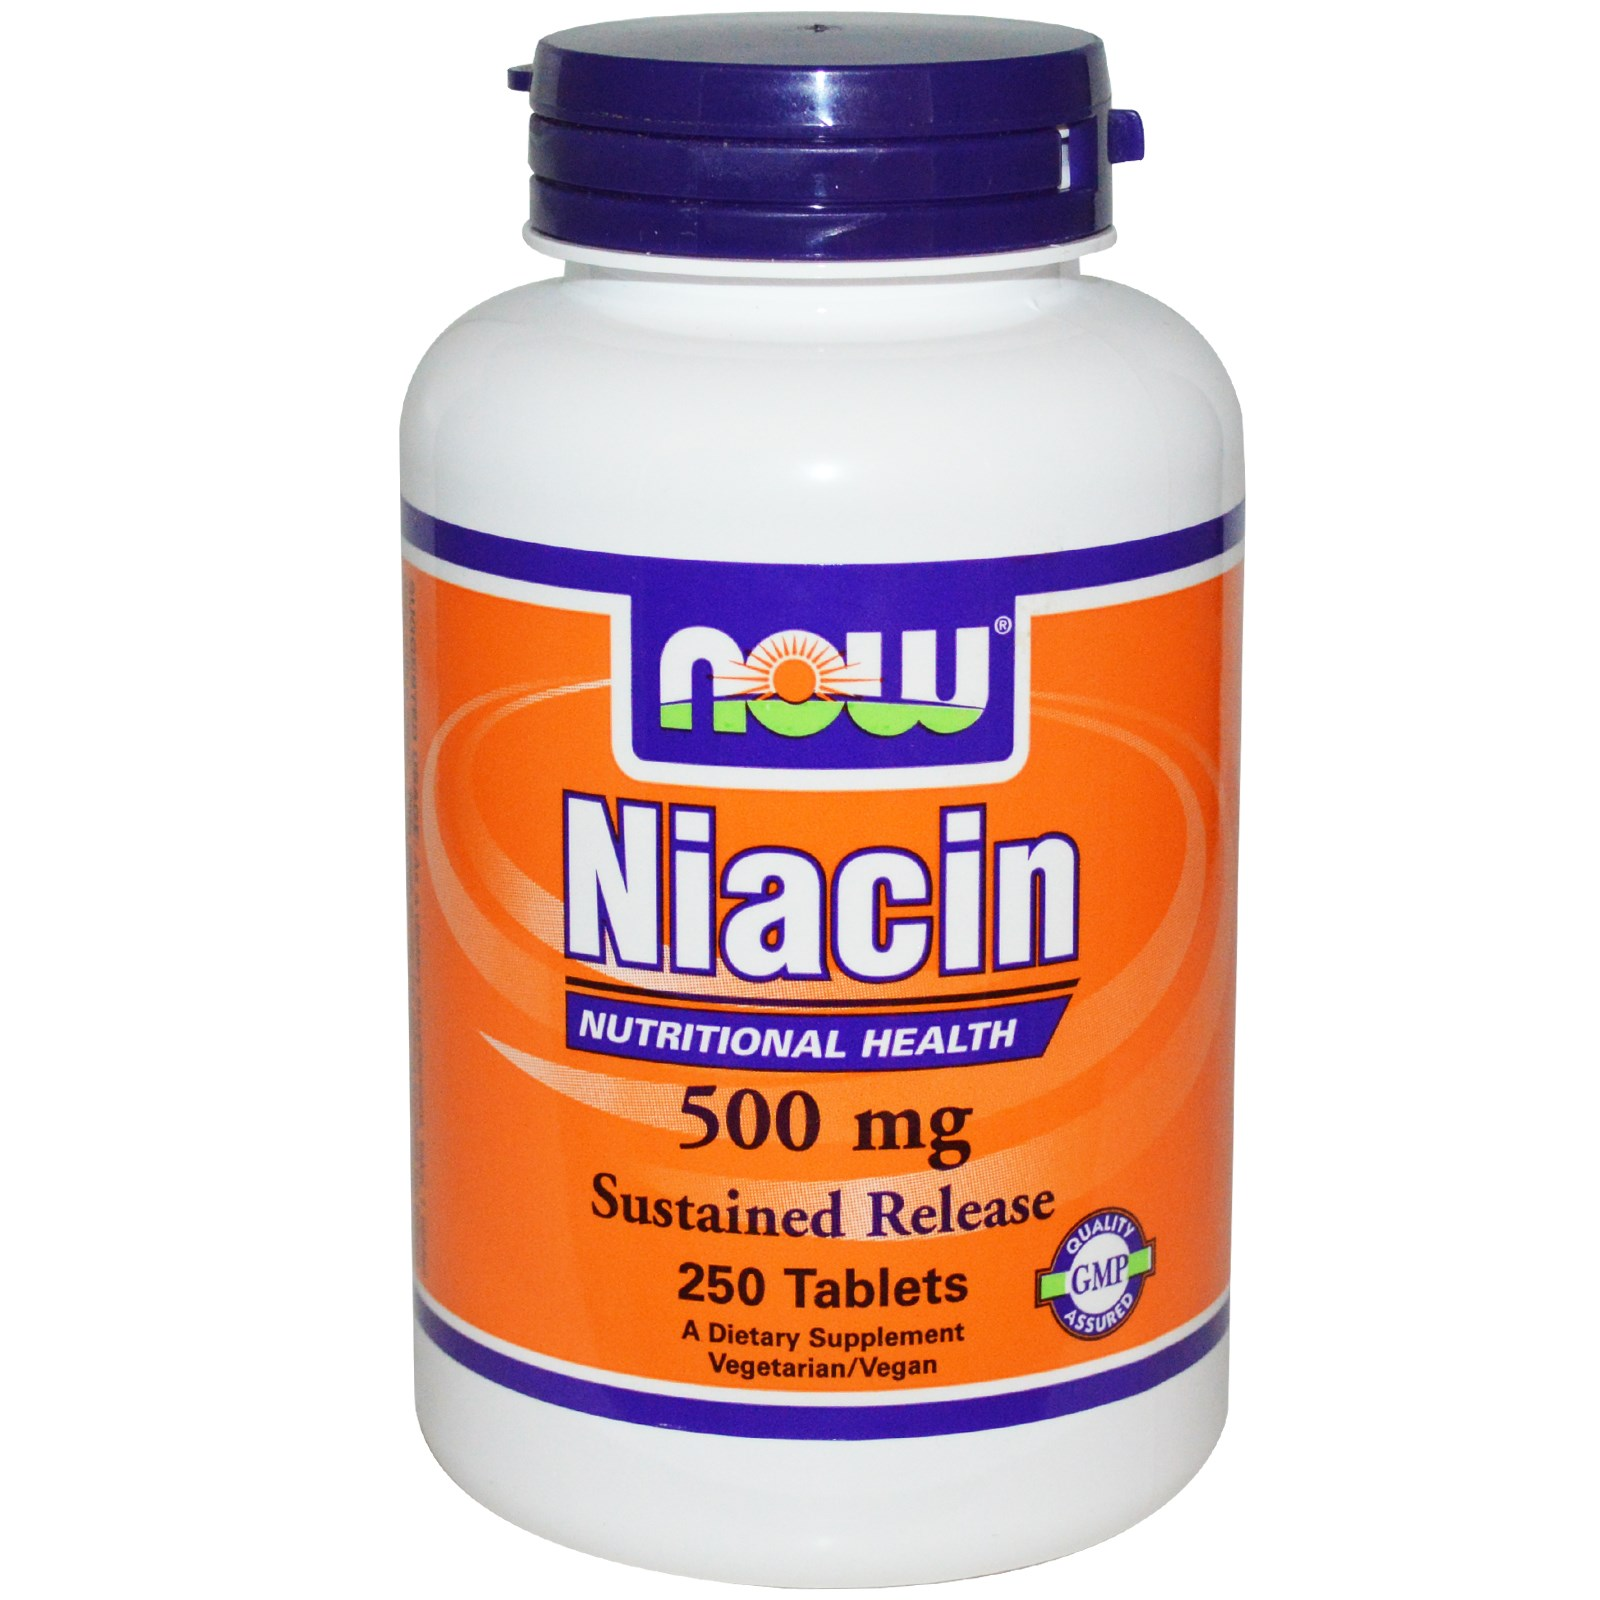 Niacin before drug test